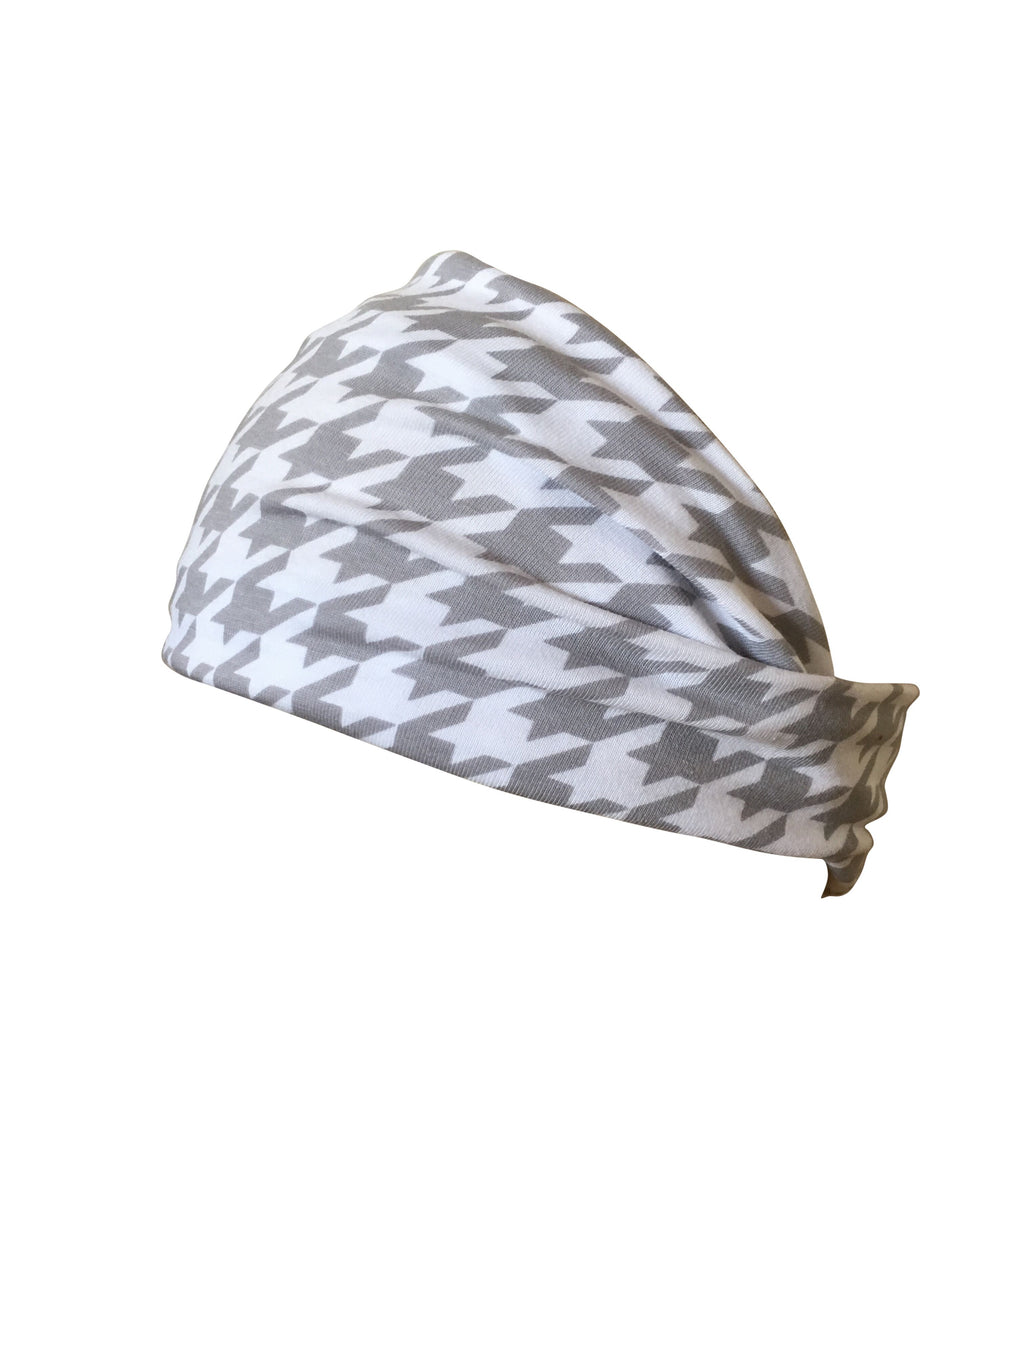 Headband - houndstooth